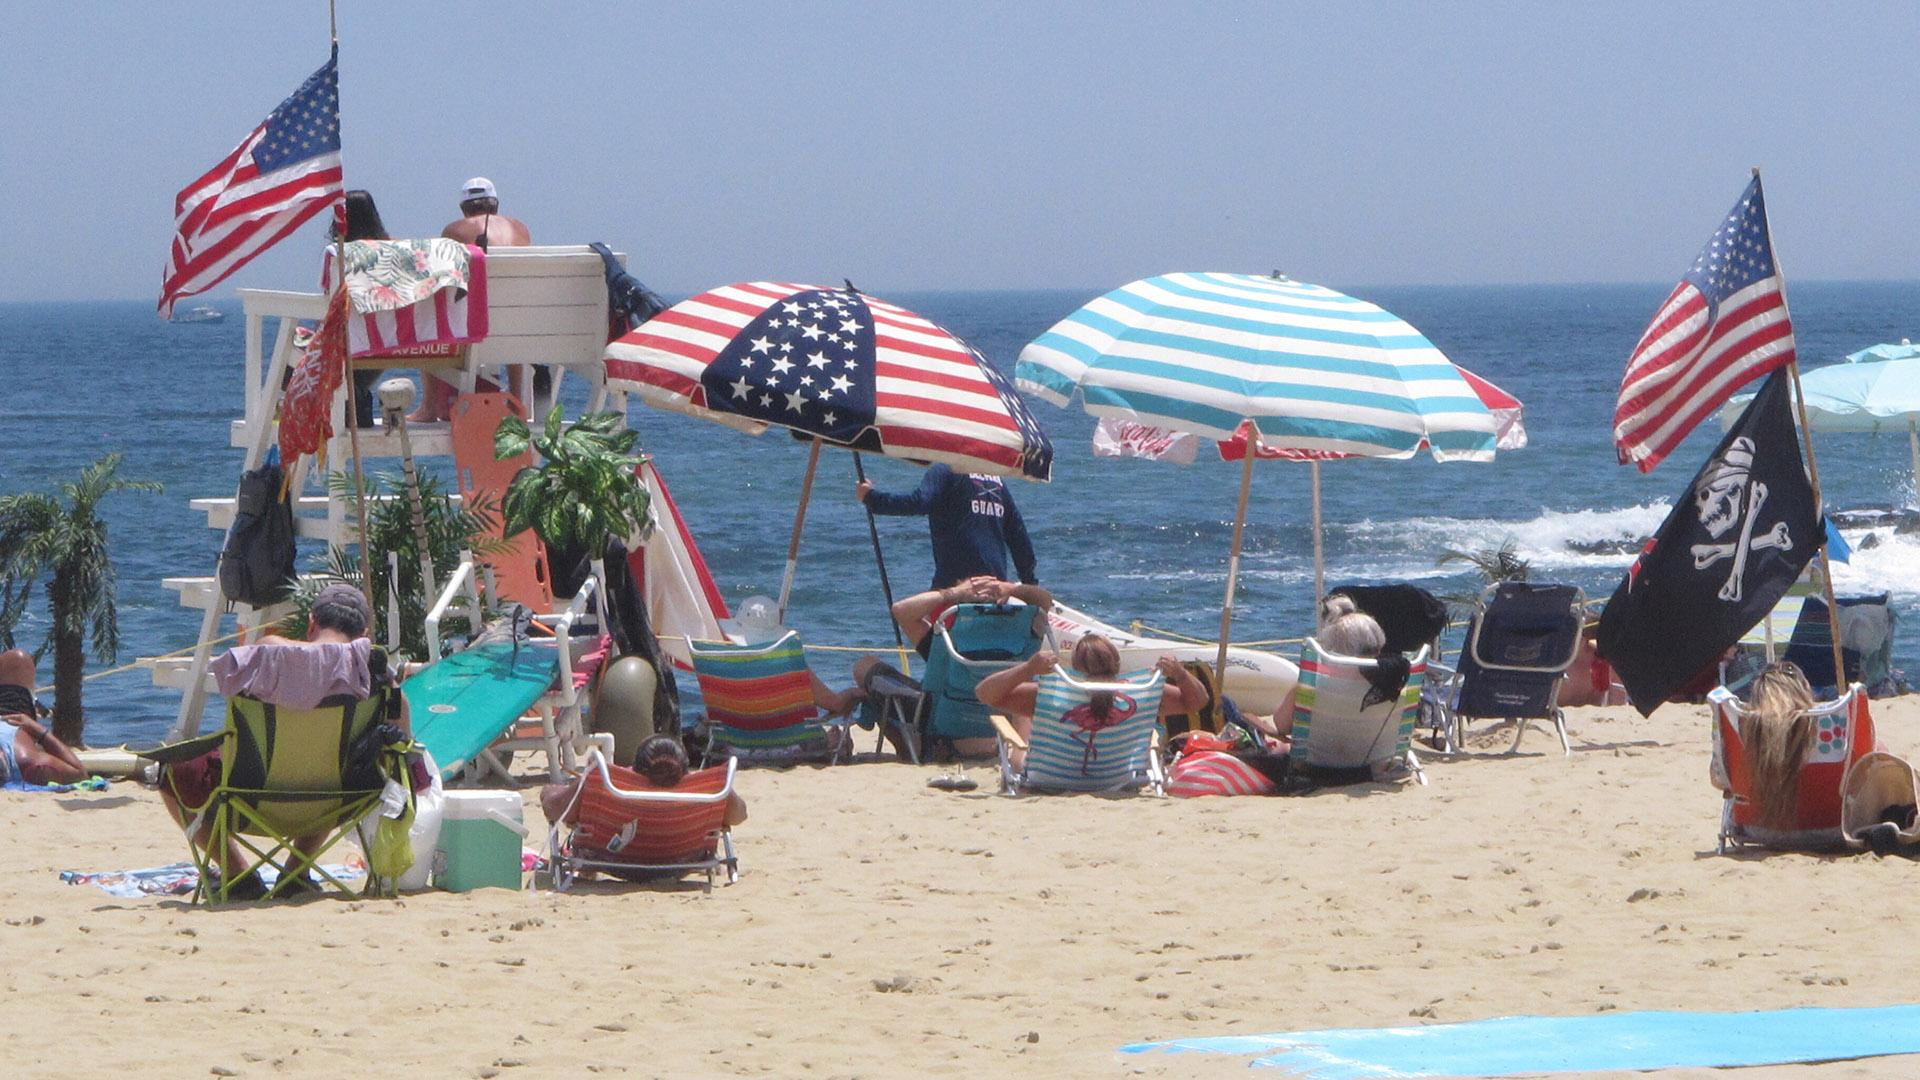 Flags line the beach in Belmar, N.J., on June 28, 2020. With large crowds expected at the Jersey Shore for the July Fourth weekend, some are worried that a failure to heed mask-wearing and social distancing protocols could accelerate the spread of the coronavirus. (AP Photo / Wayne Parry)